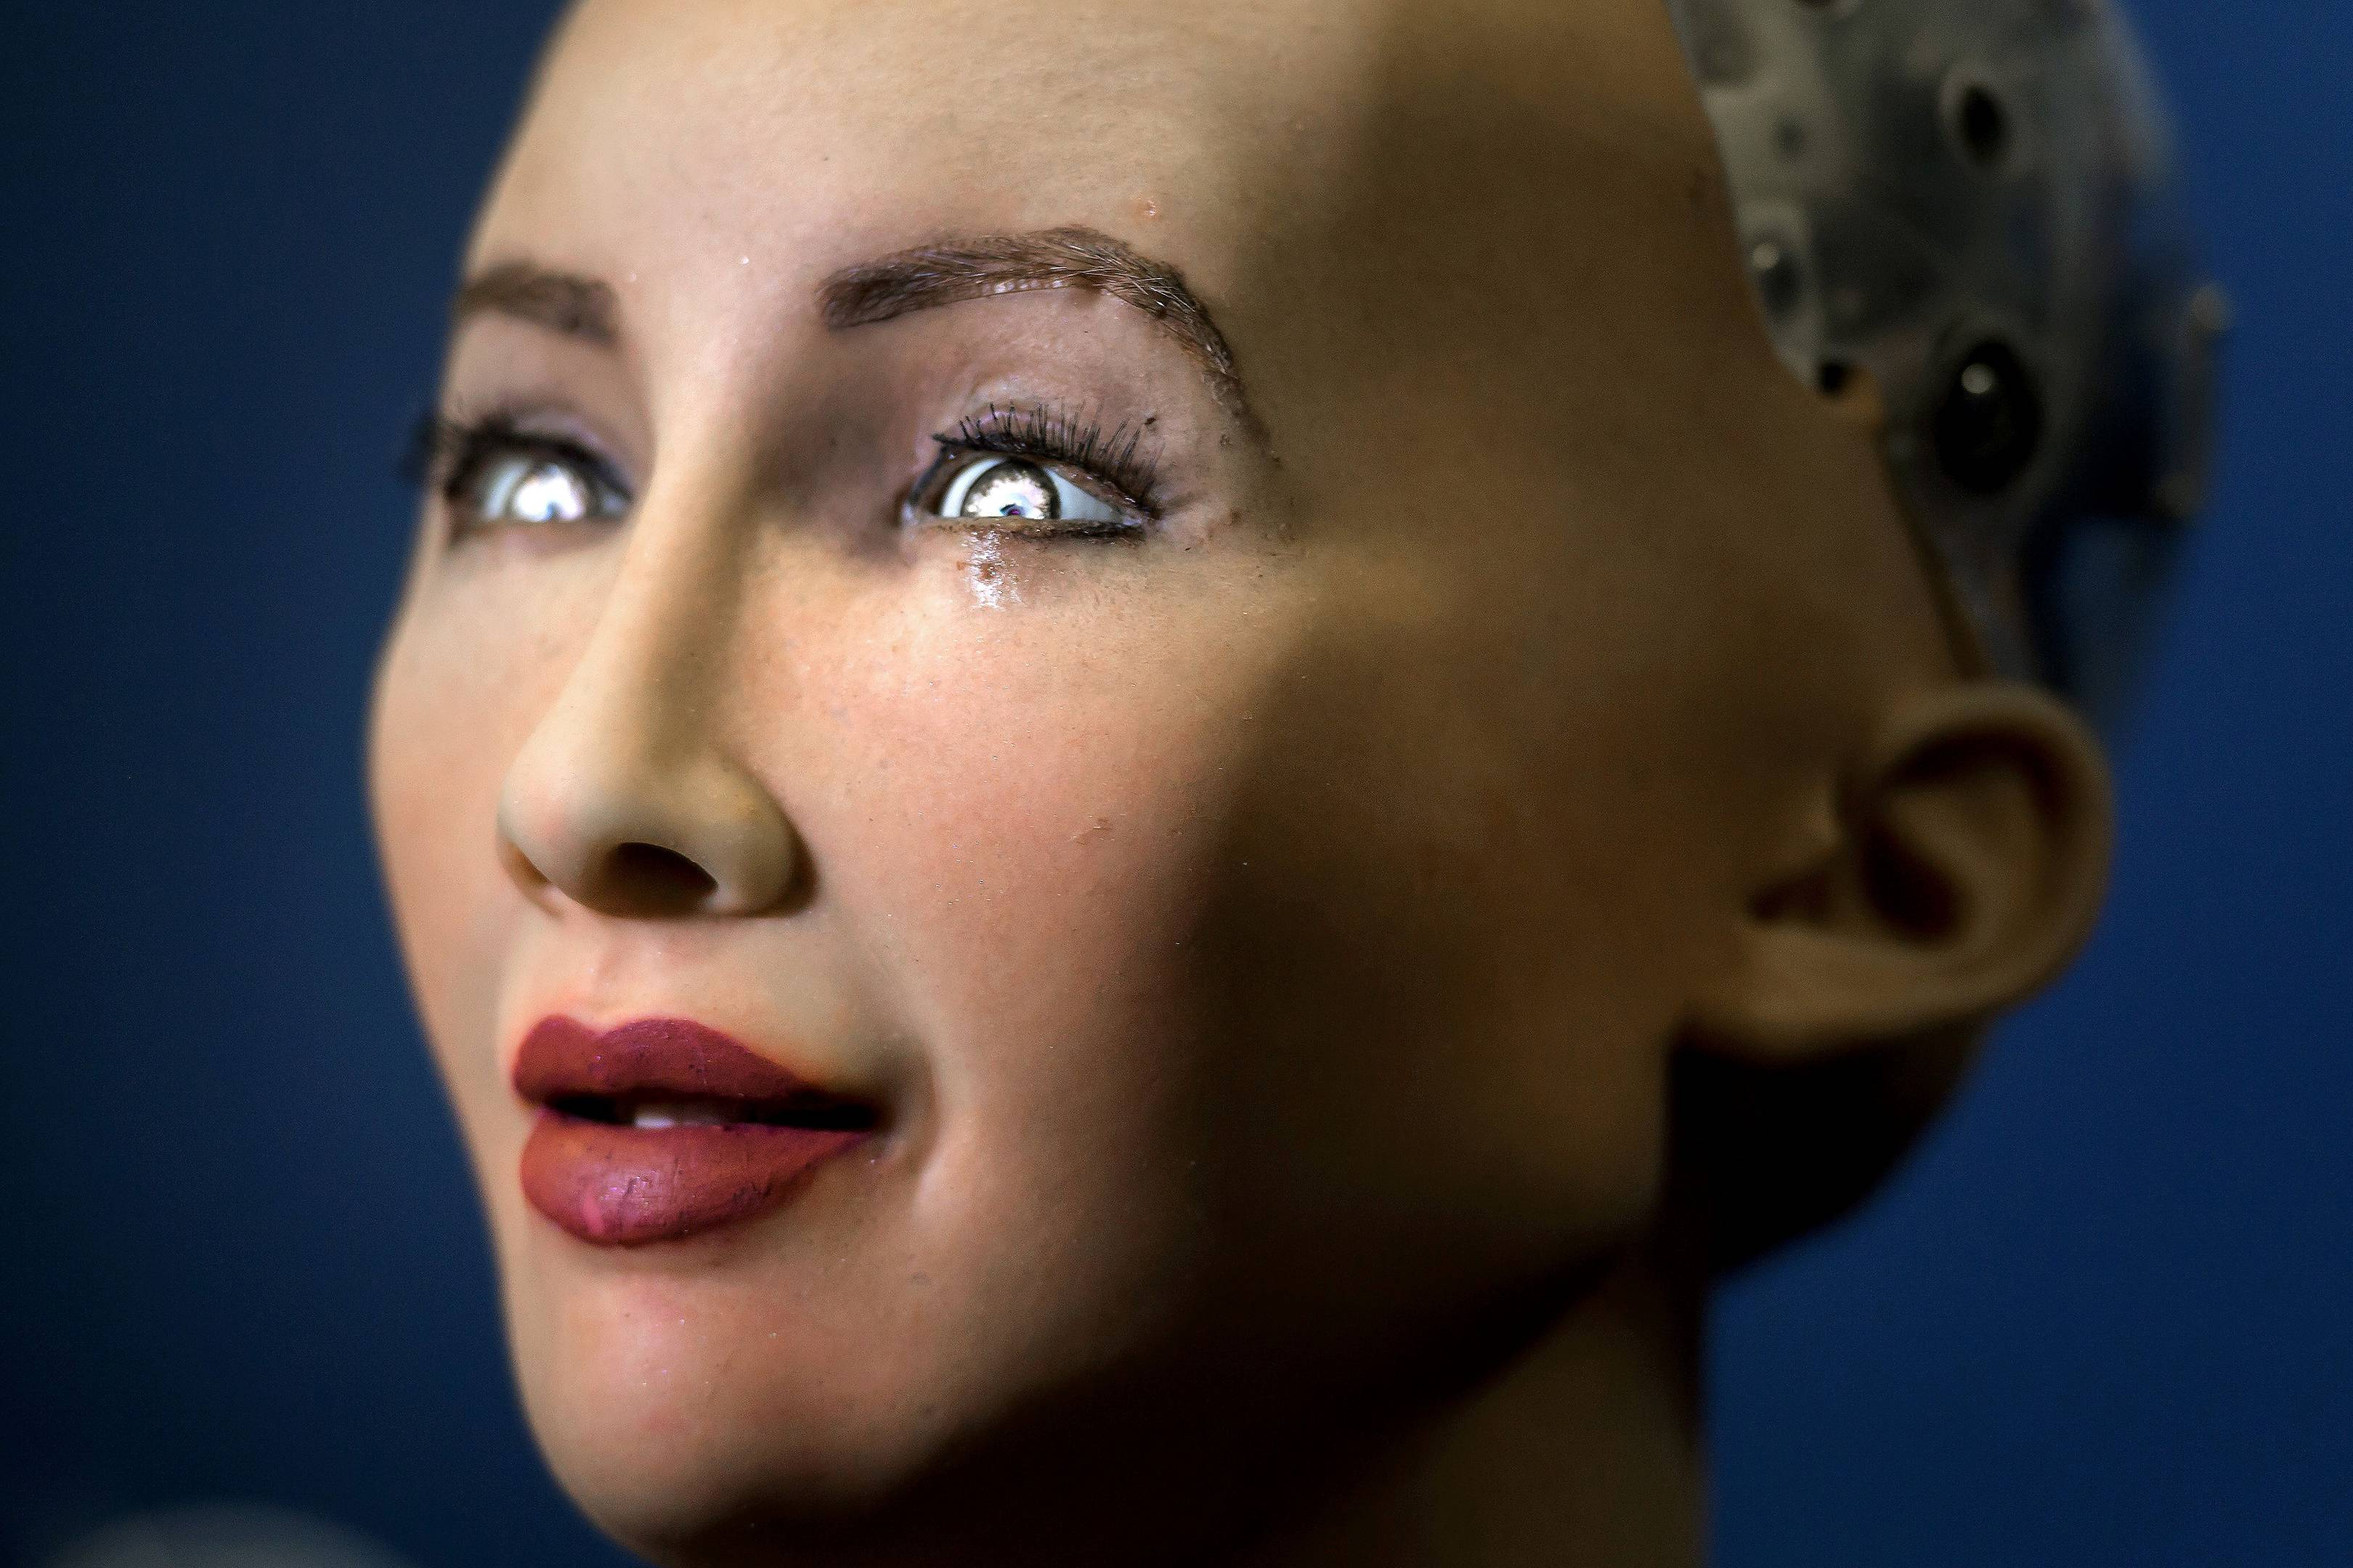 The agony of Sophia, the world's first robot citizen condemned to a